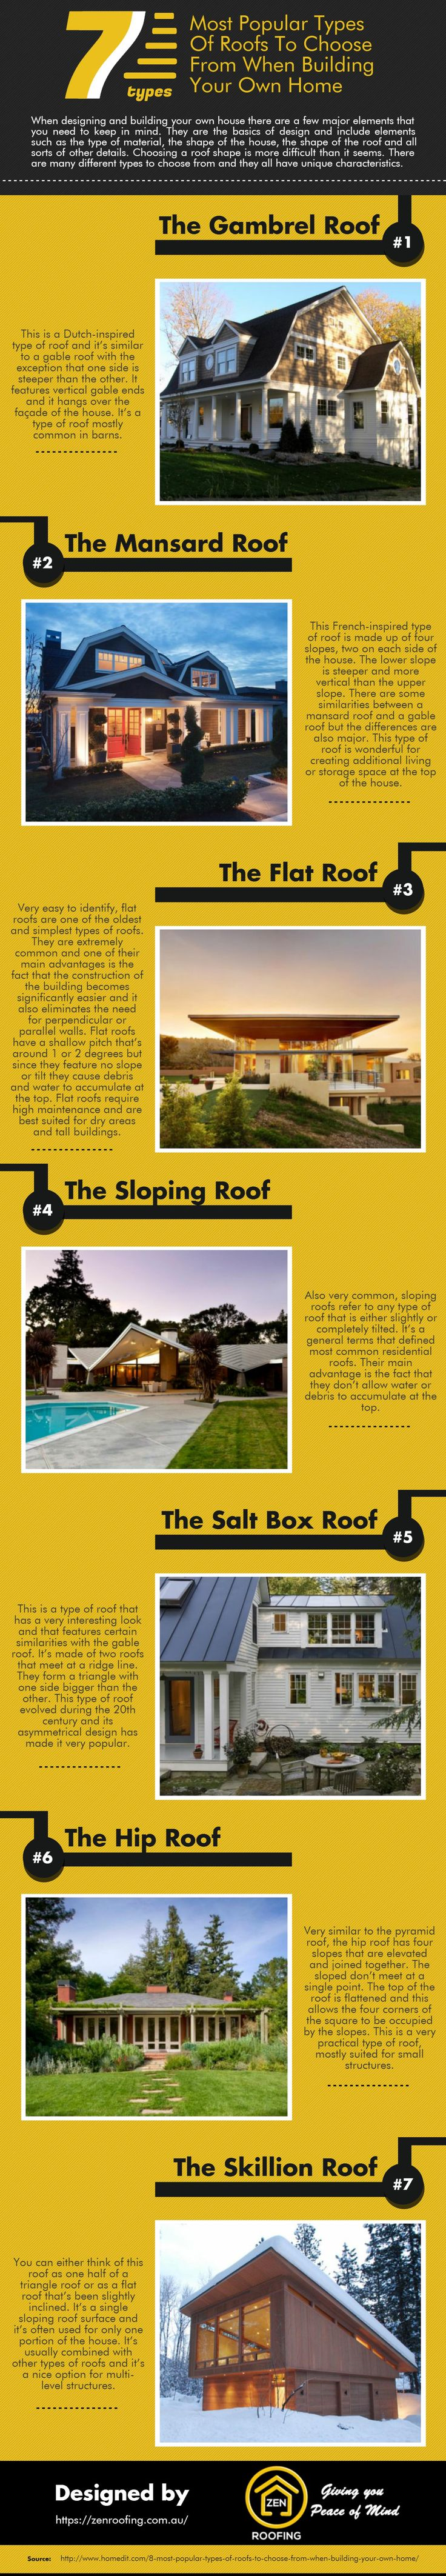 The following infographic is provided by Zen Roofing. Planning to build a house? Have you thought which type of roofing materials you are going to use for your top? Before plunging in, In this infographic we will help you narrow down your choice of roofing materials.